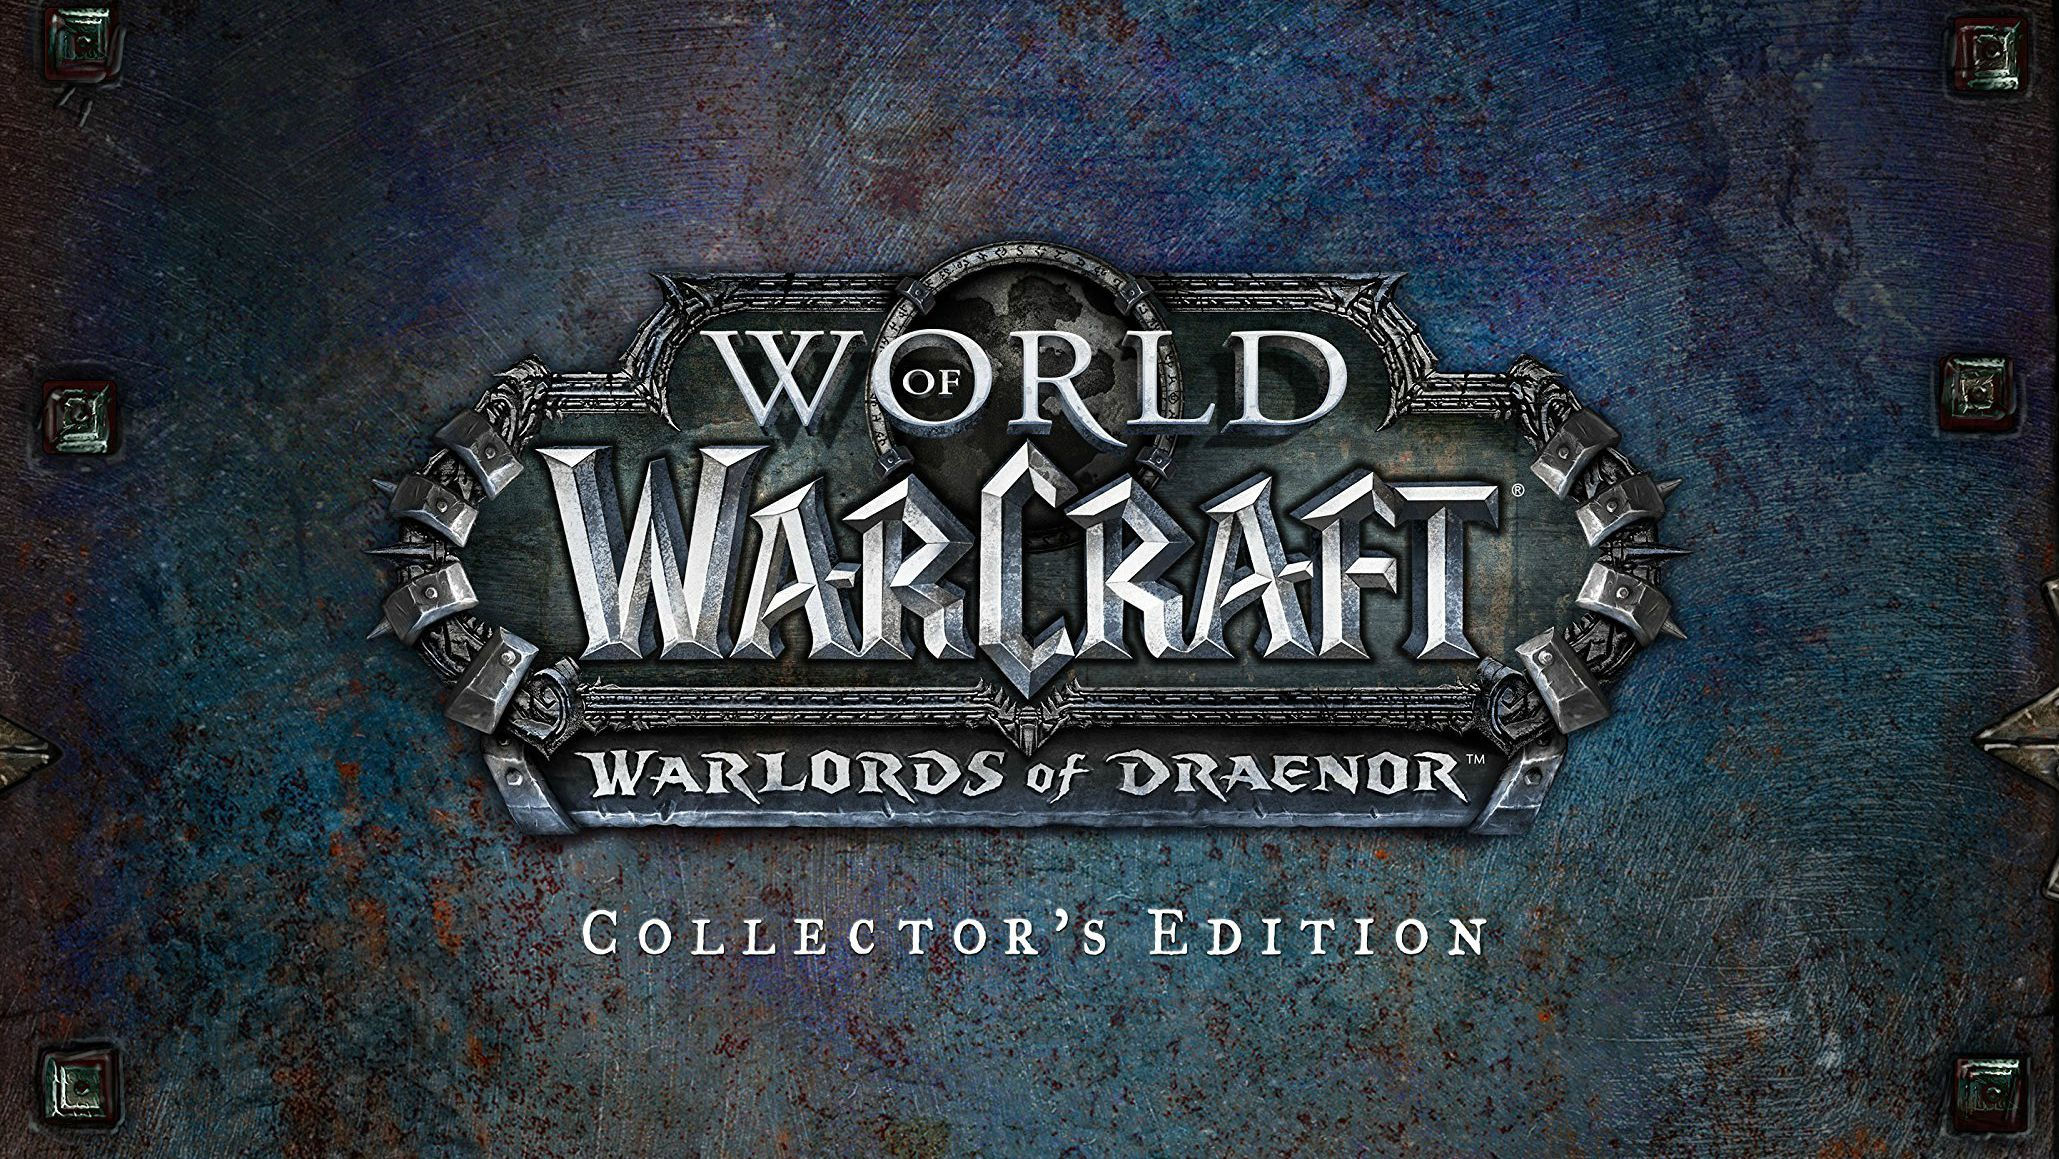 cover-pc-world-of-warcraft-warlords-of-draenor-collectors-edition FINAL EDIT